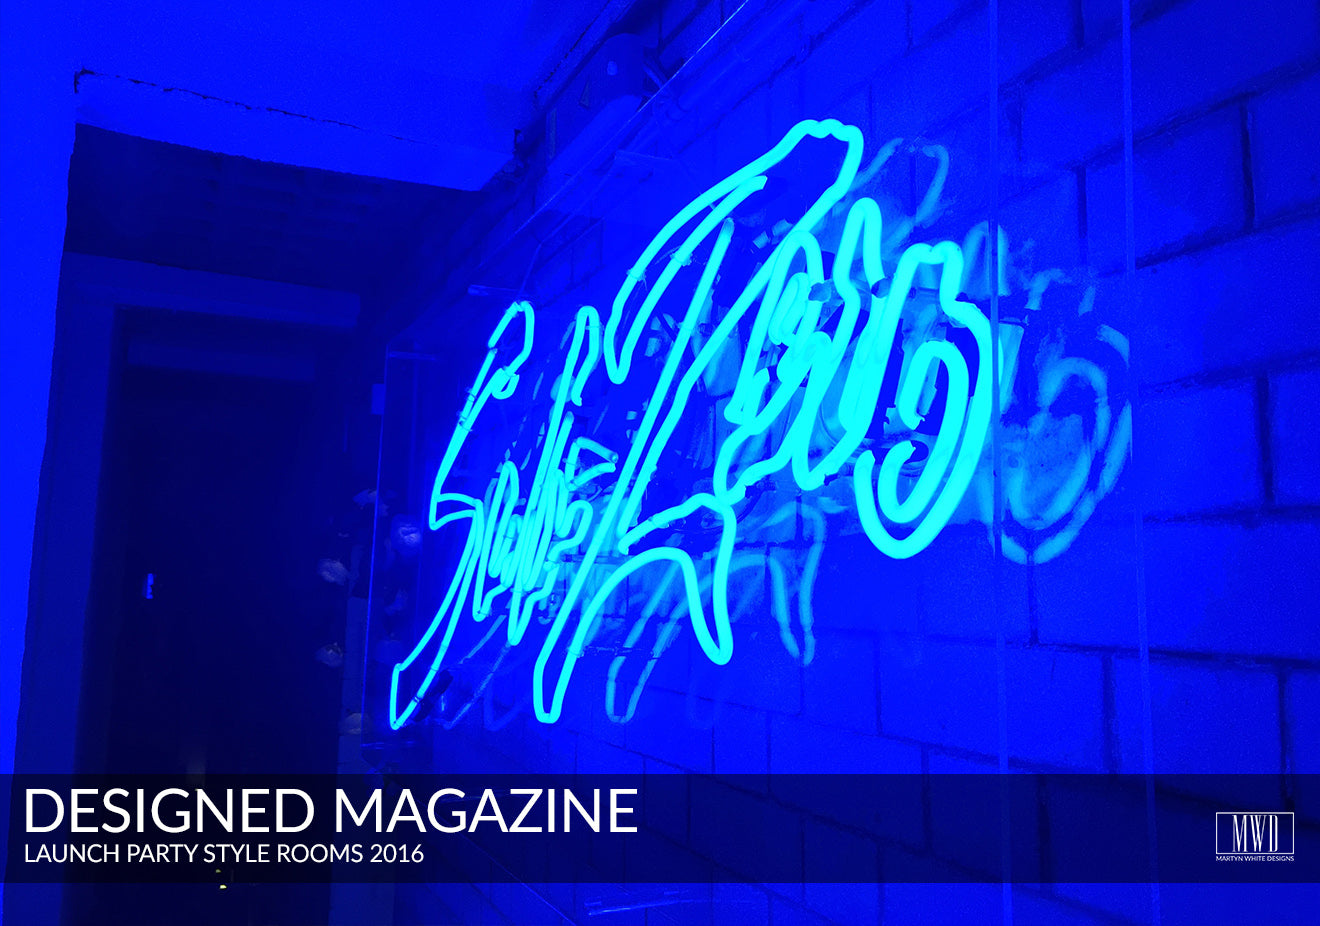 Neon light Designed magazine launch